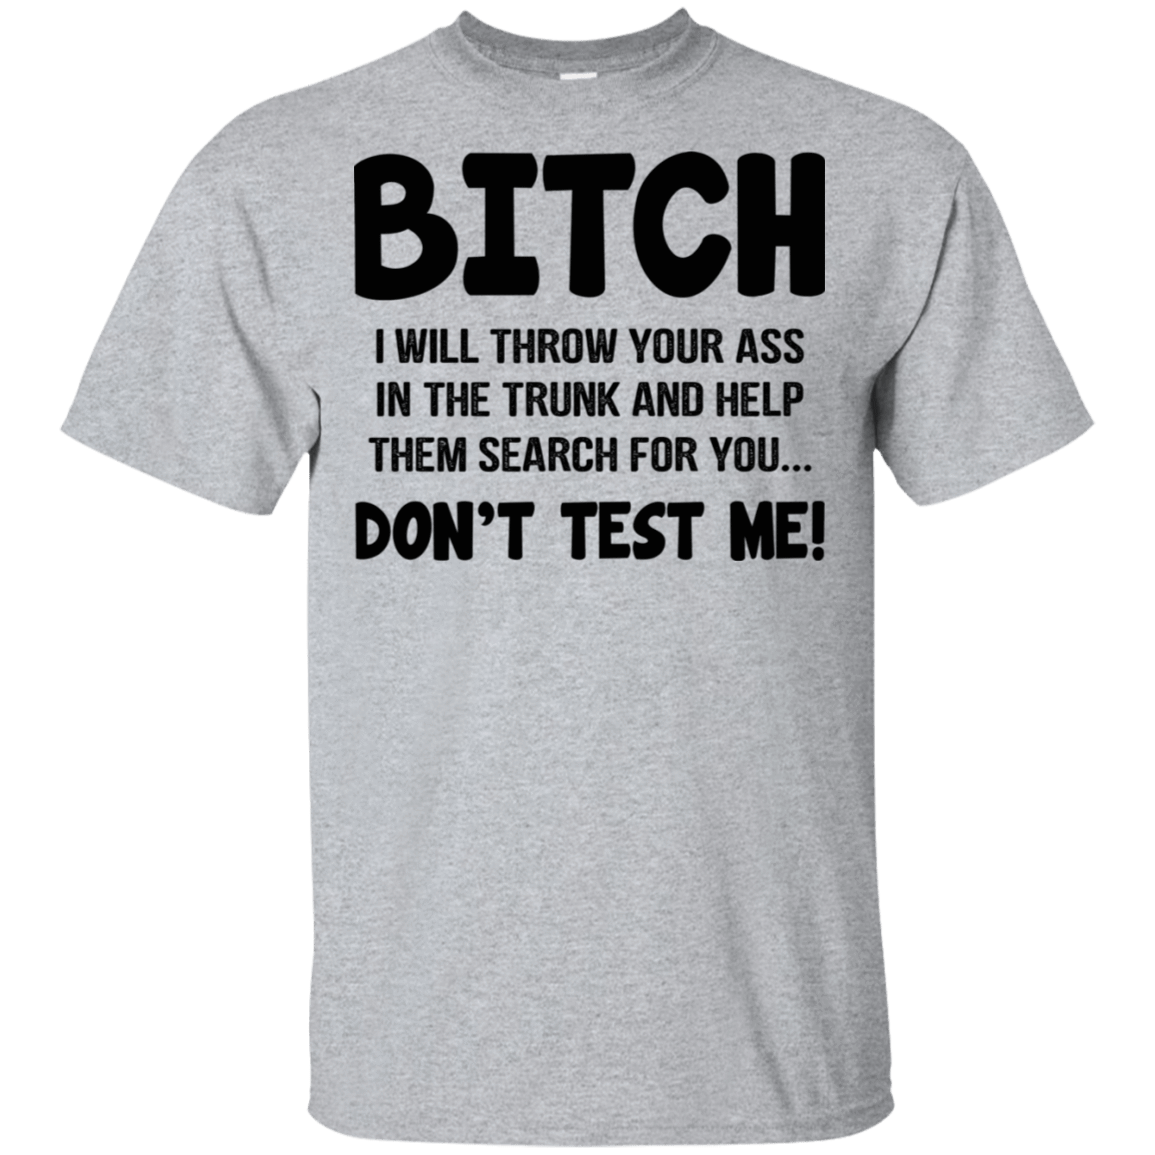 Bitch I Will Throw Your Ass In The Trunk And Help Them Search For You … Don't Test Me T-Shirts, Hoodie, Tank 22-115-78811045-254 - Tee Ript